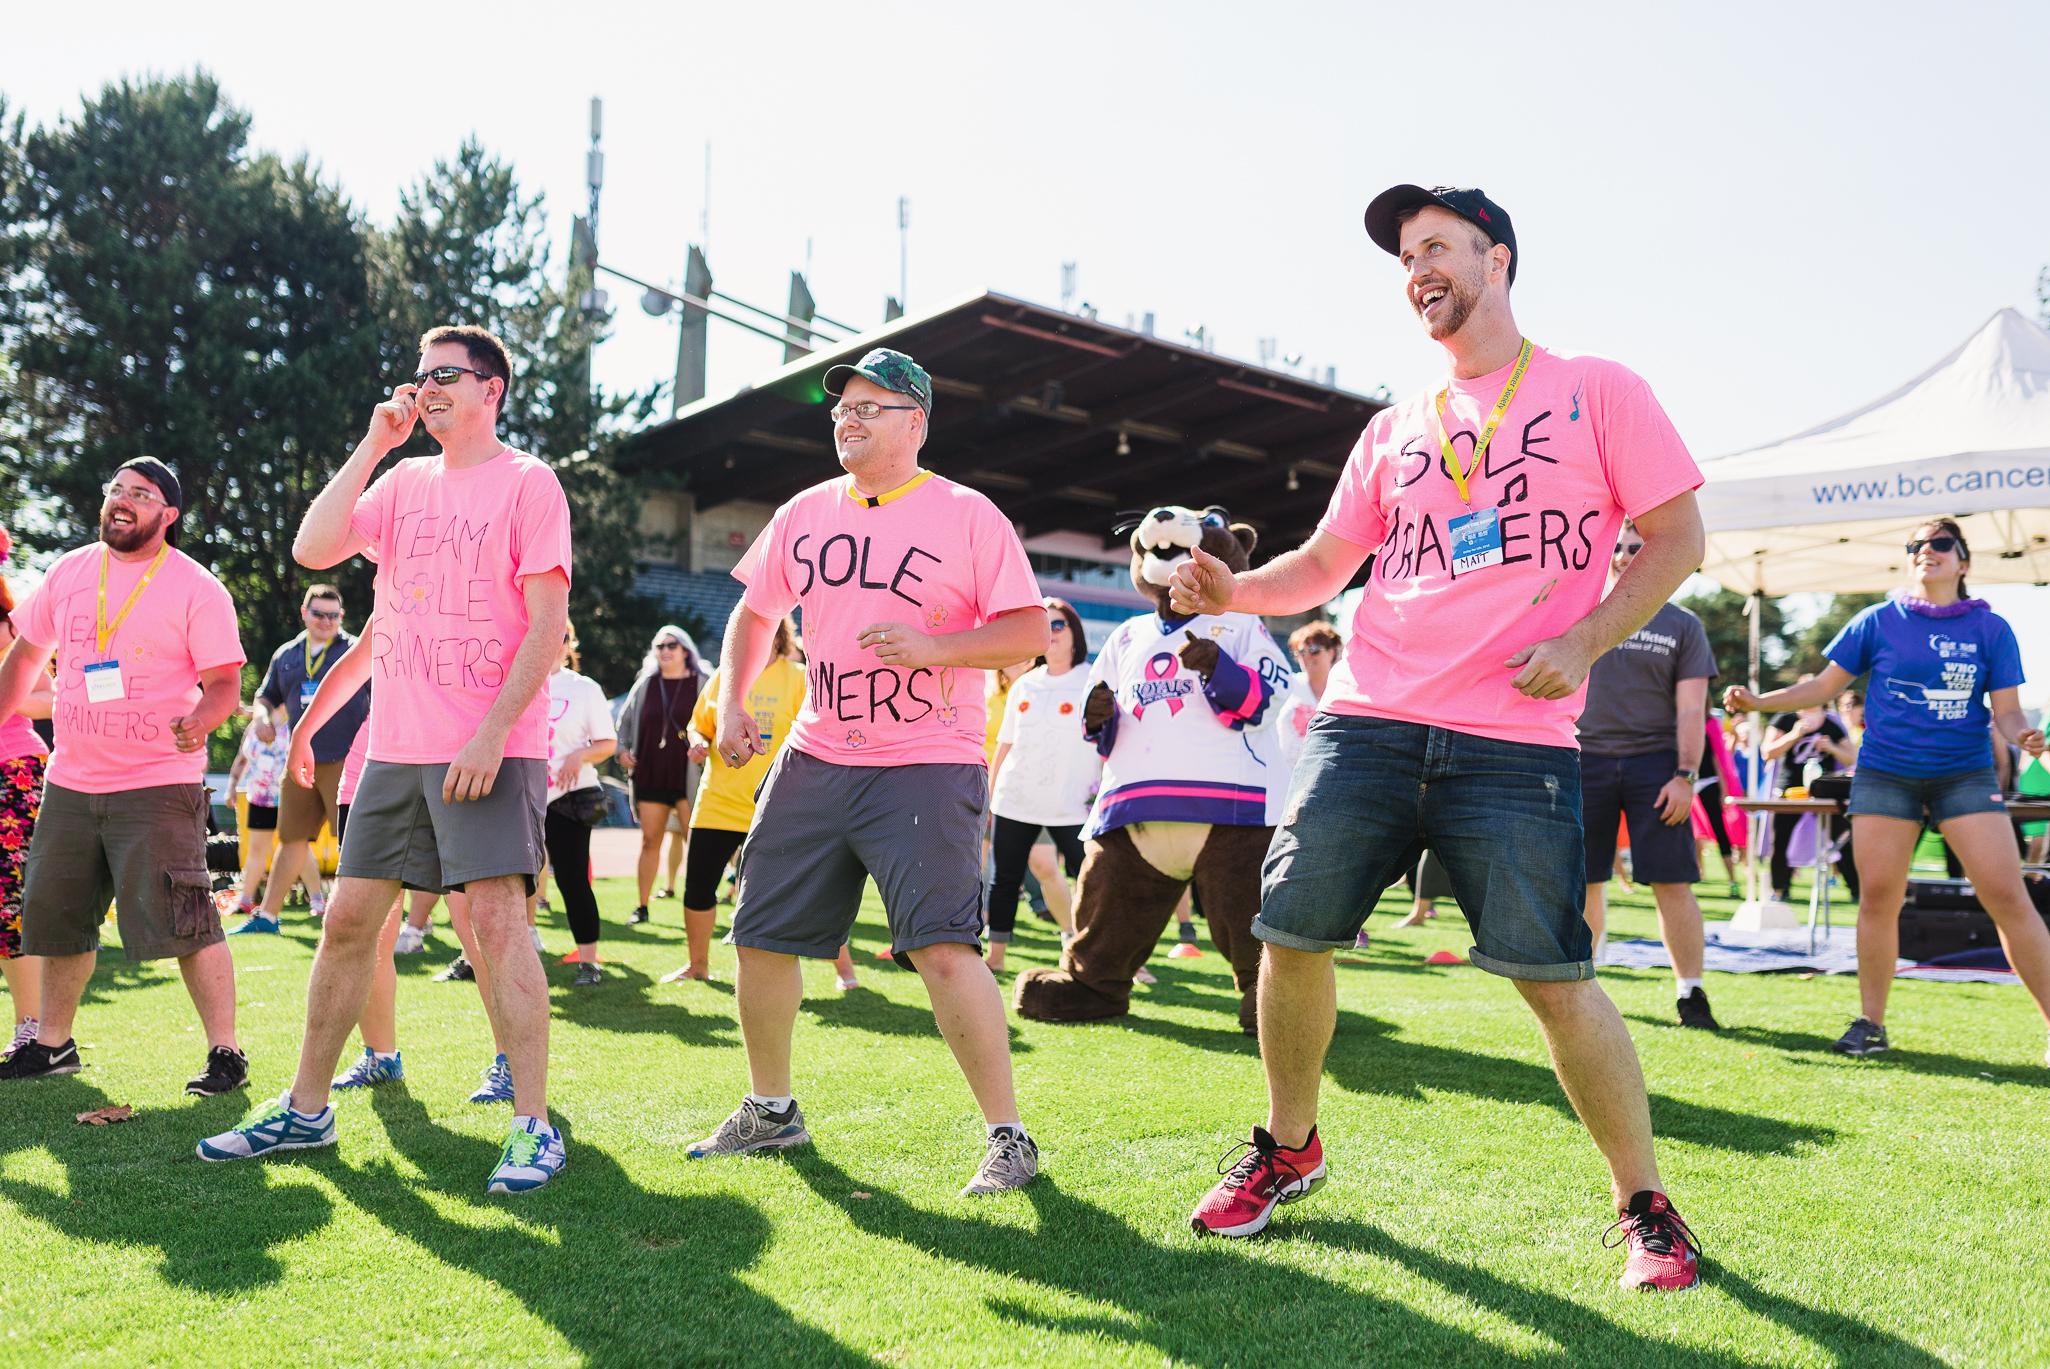 Lily_and_Lane_Relay_For_Life_Victoria_2015 (25).jpg